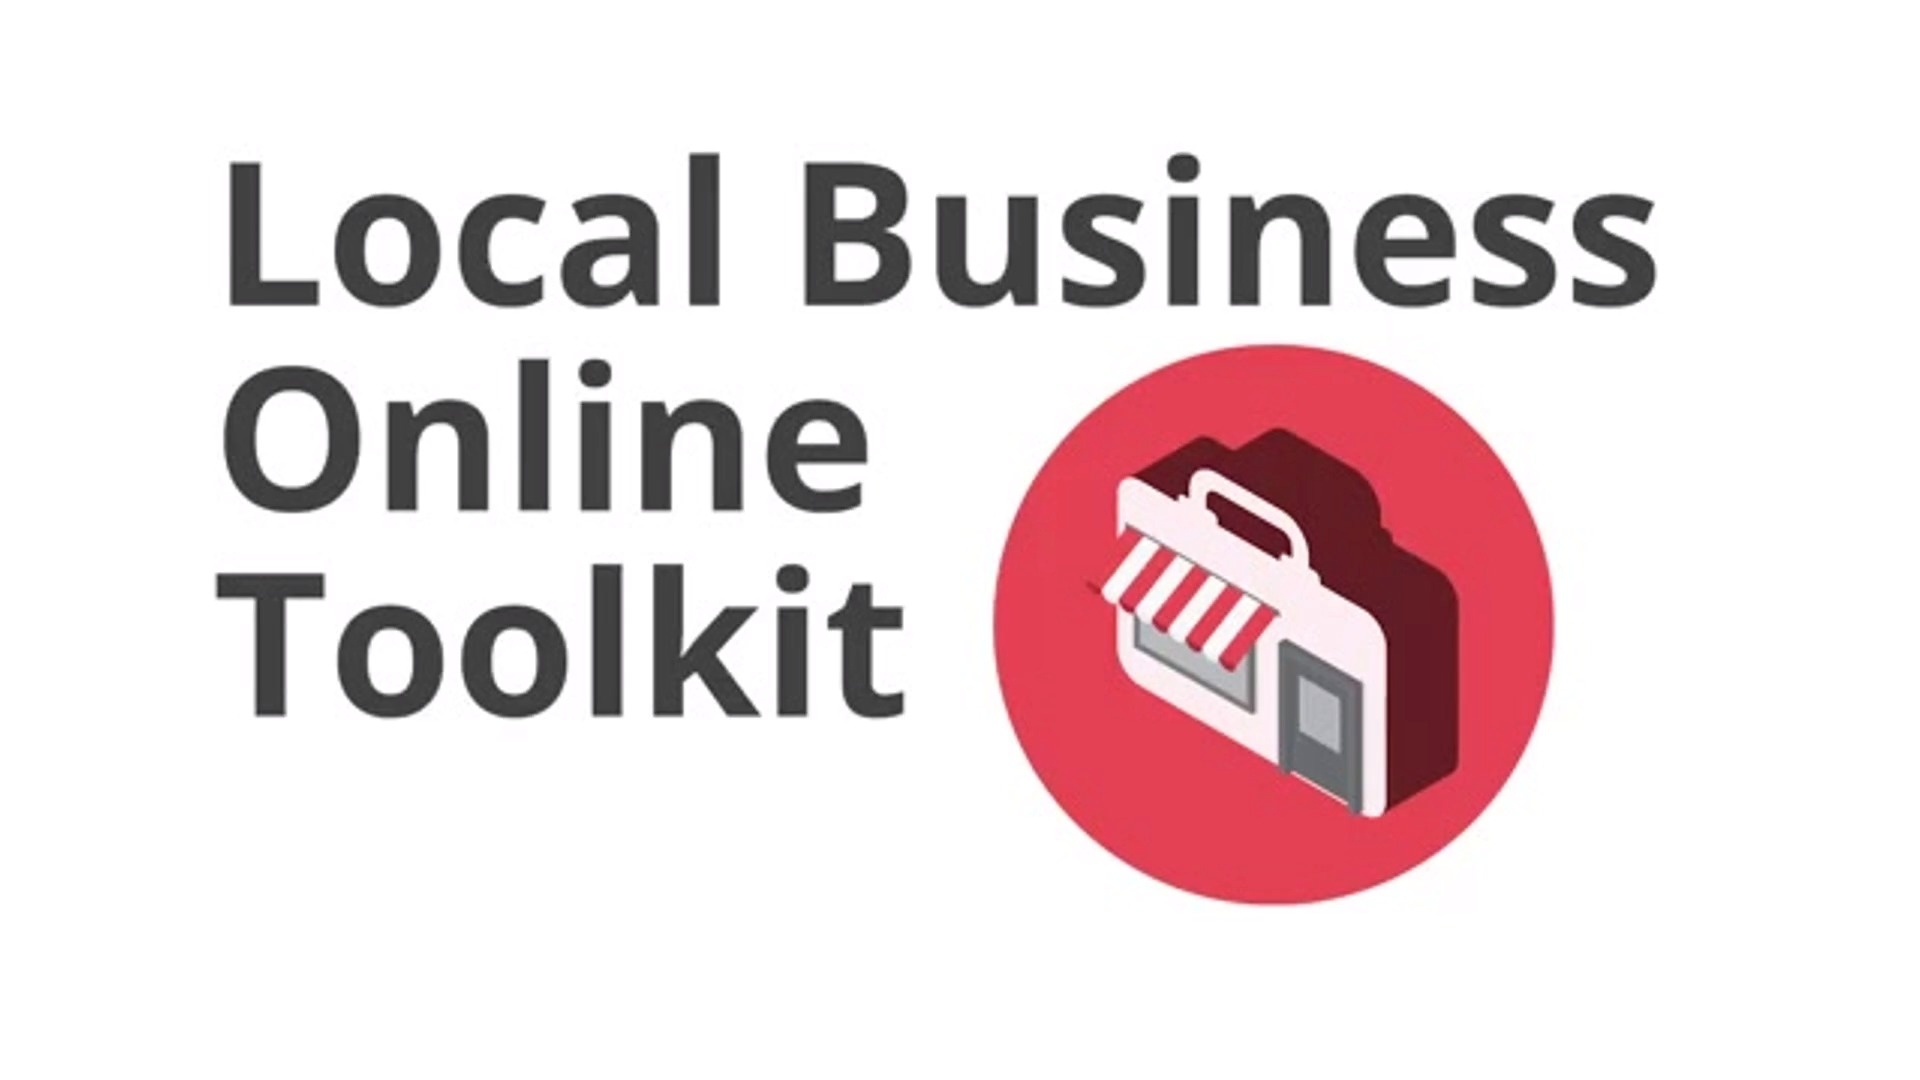 The Local Business Online Toolkit